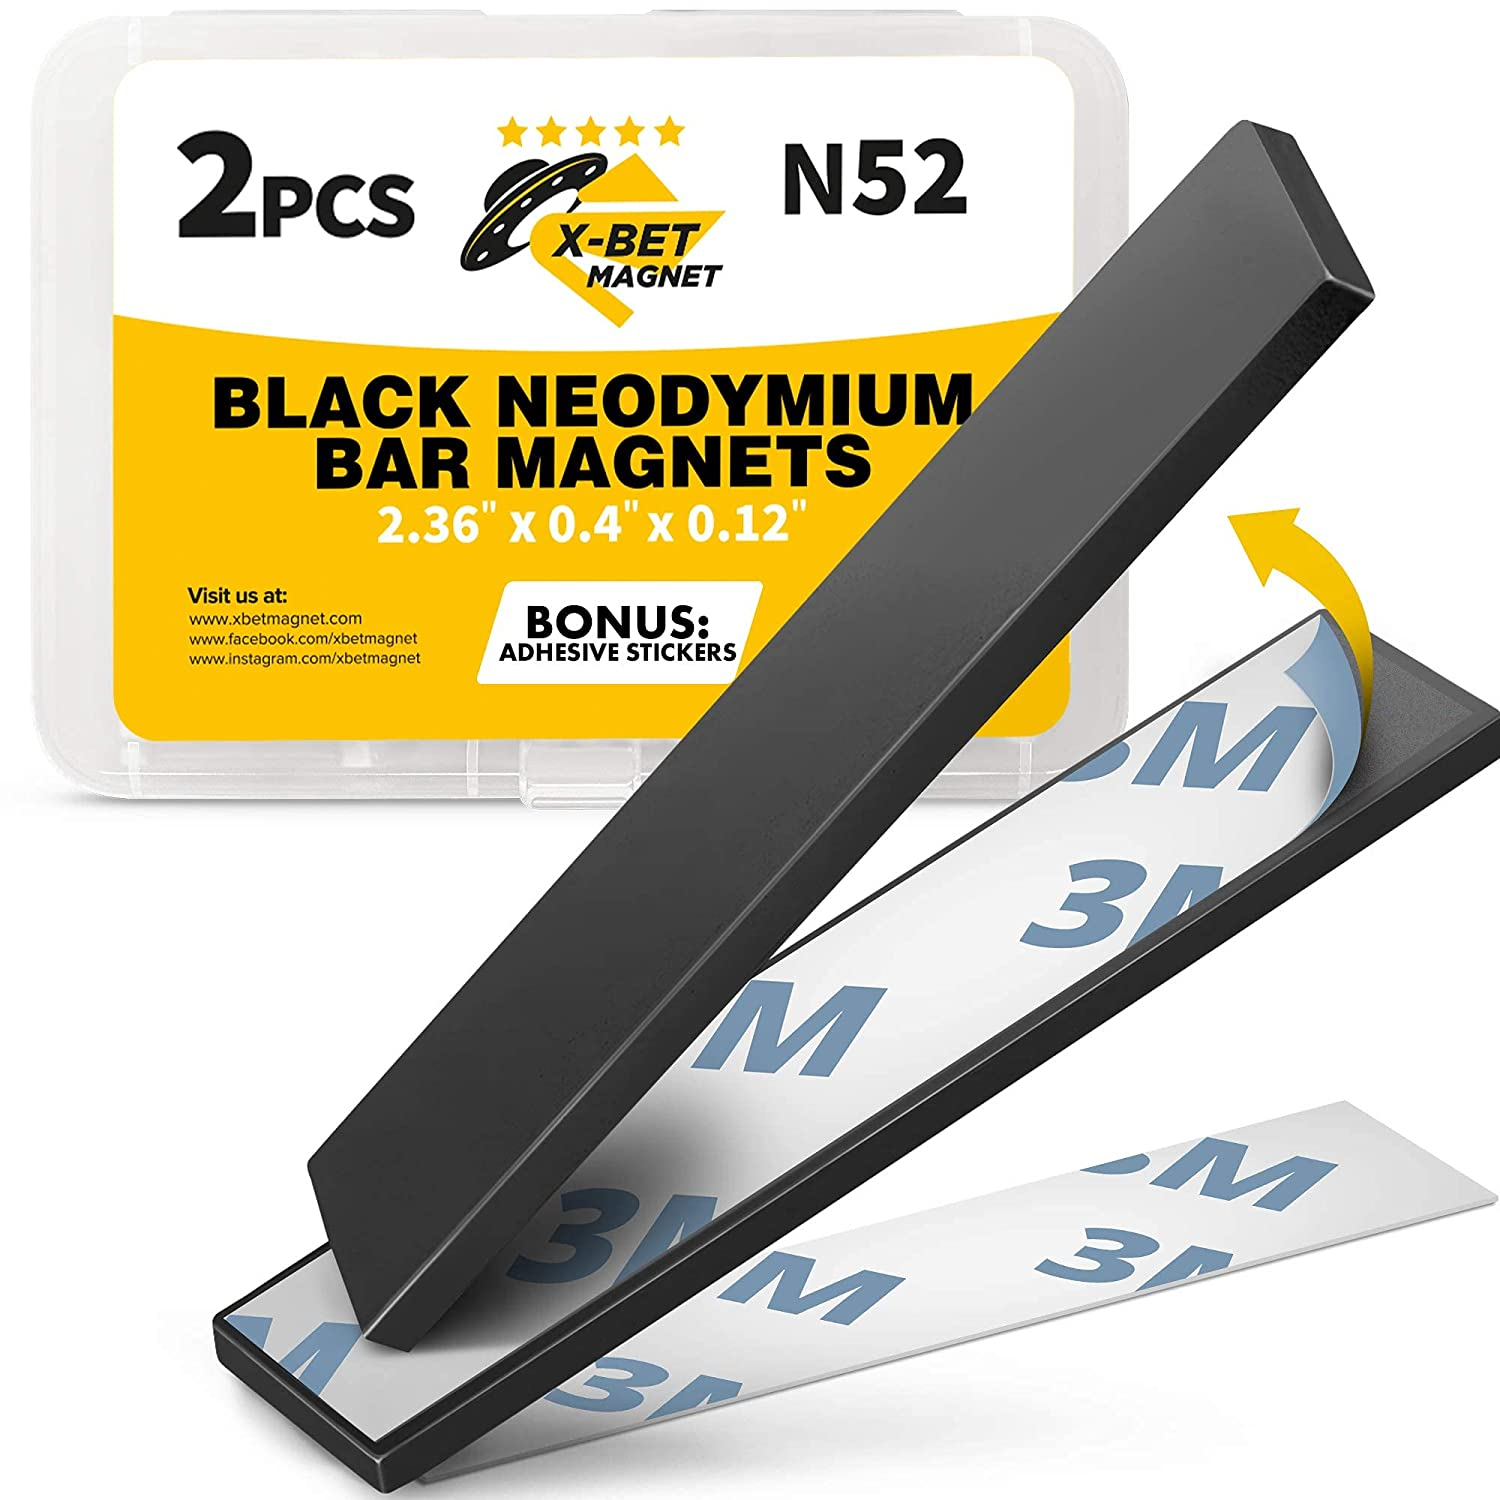 Super Strong Neodymium Max 60% OFF Max 61% OFF Bar Magnets with Backing – Adhesive